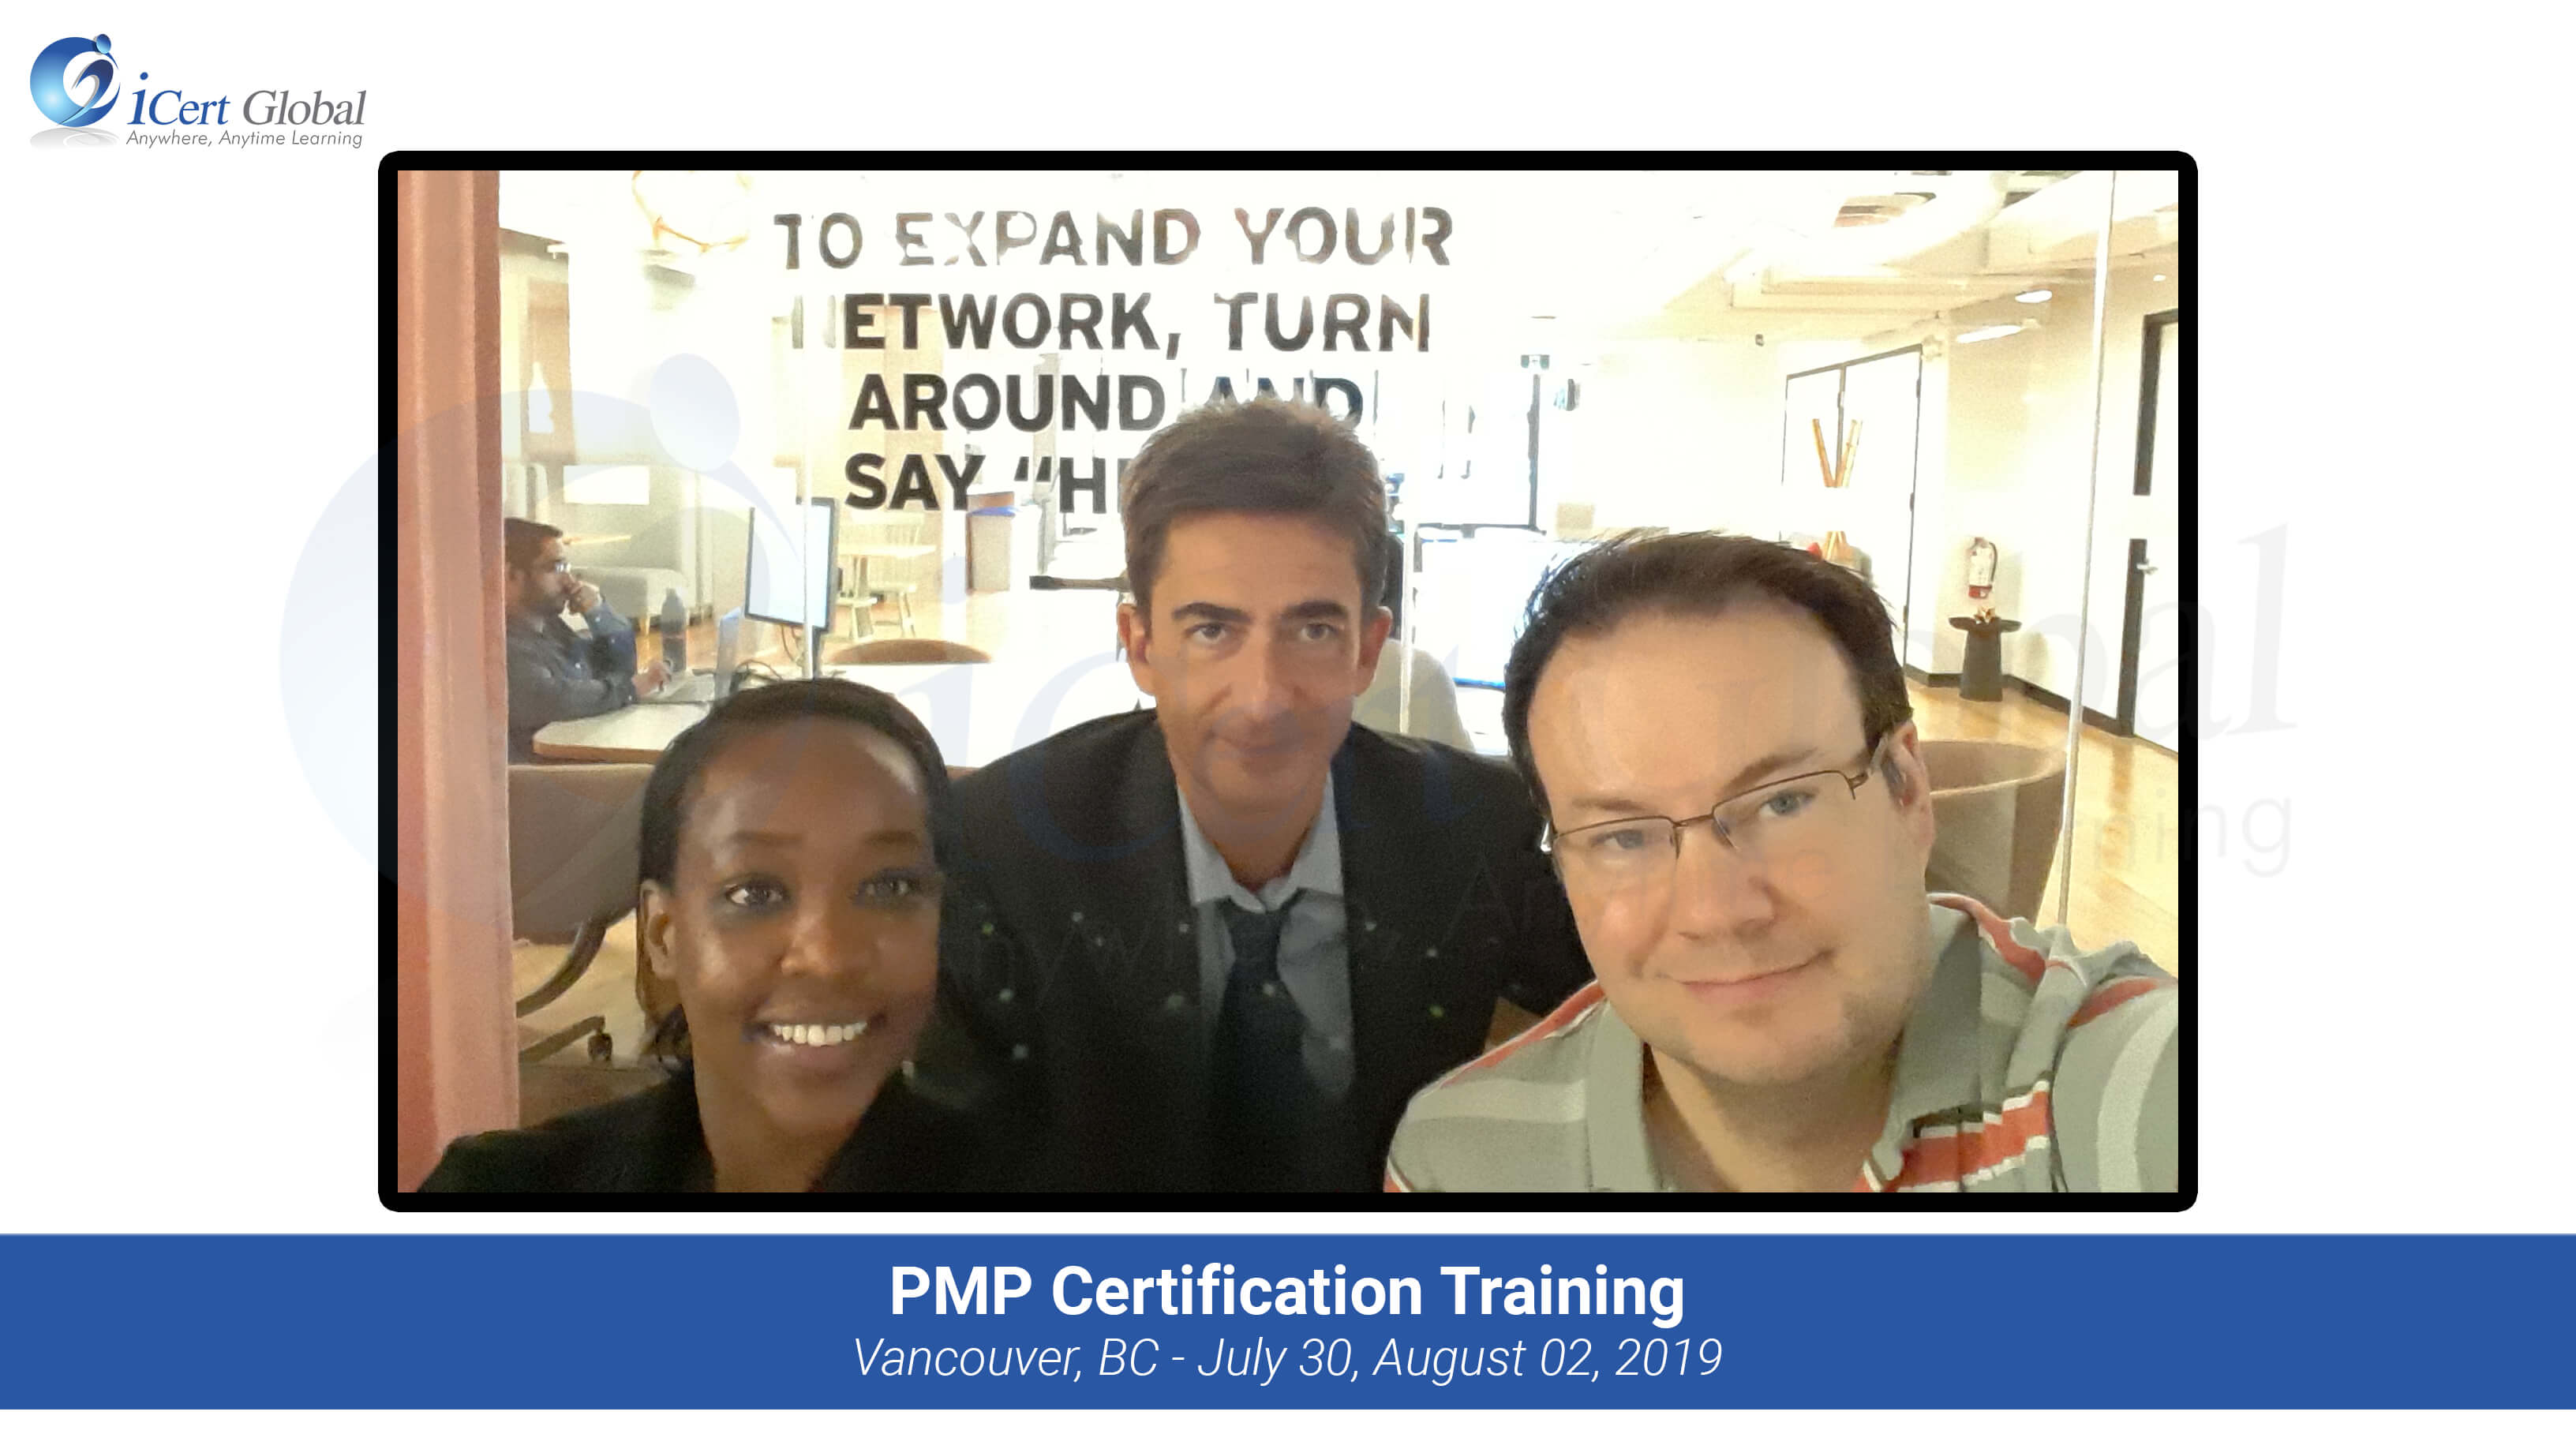 PMP Certification Training Course in Vancouver, BC, Canada from July 30 to August 02, 2019